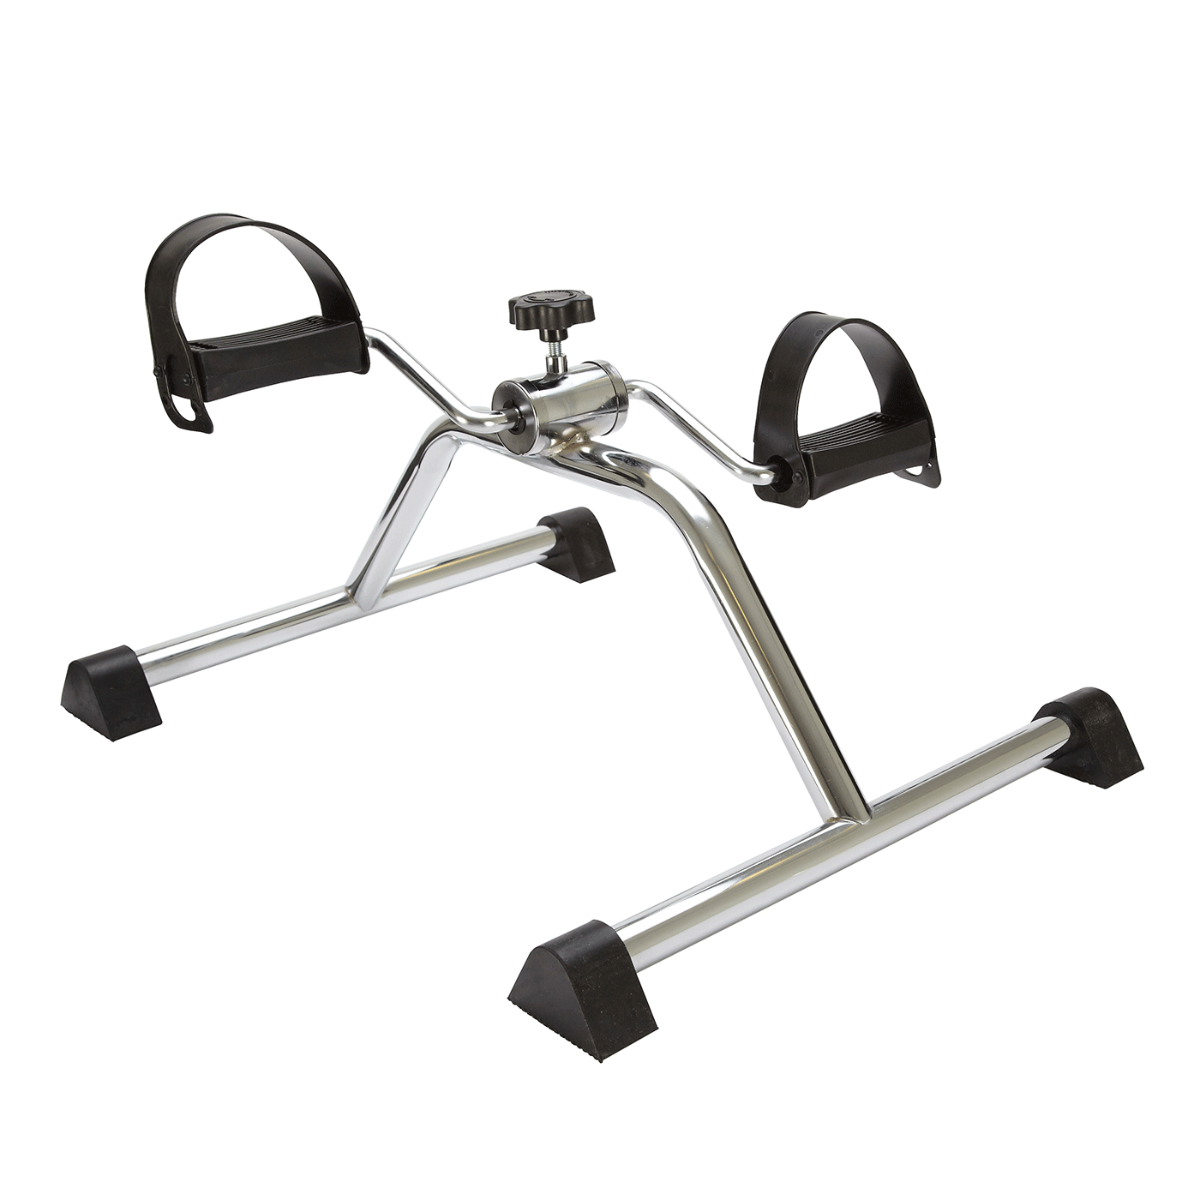 Pedal Exerciser image